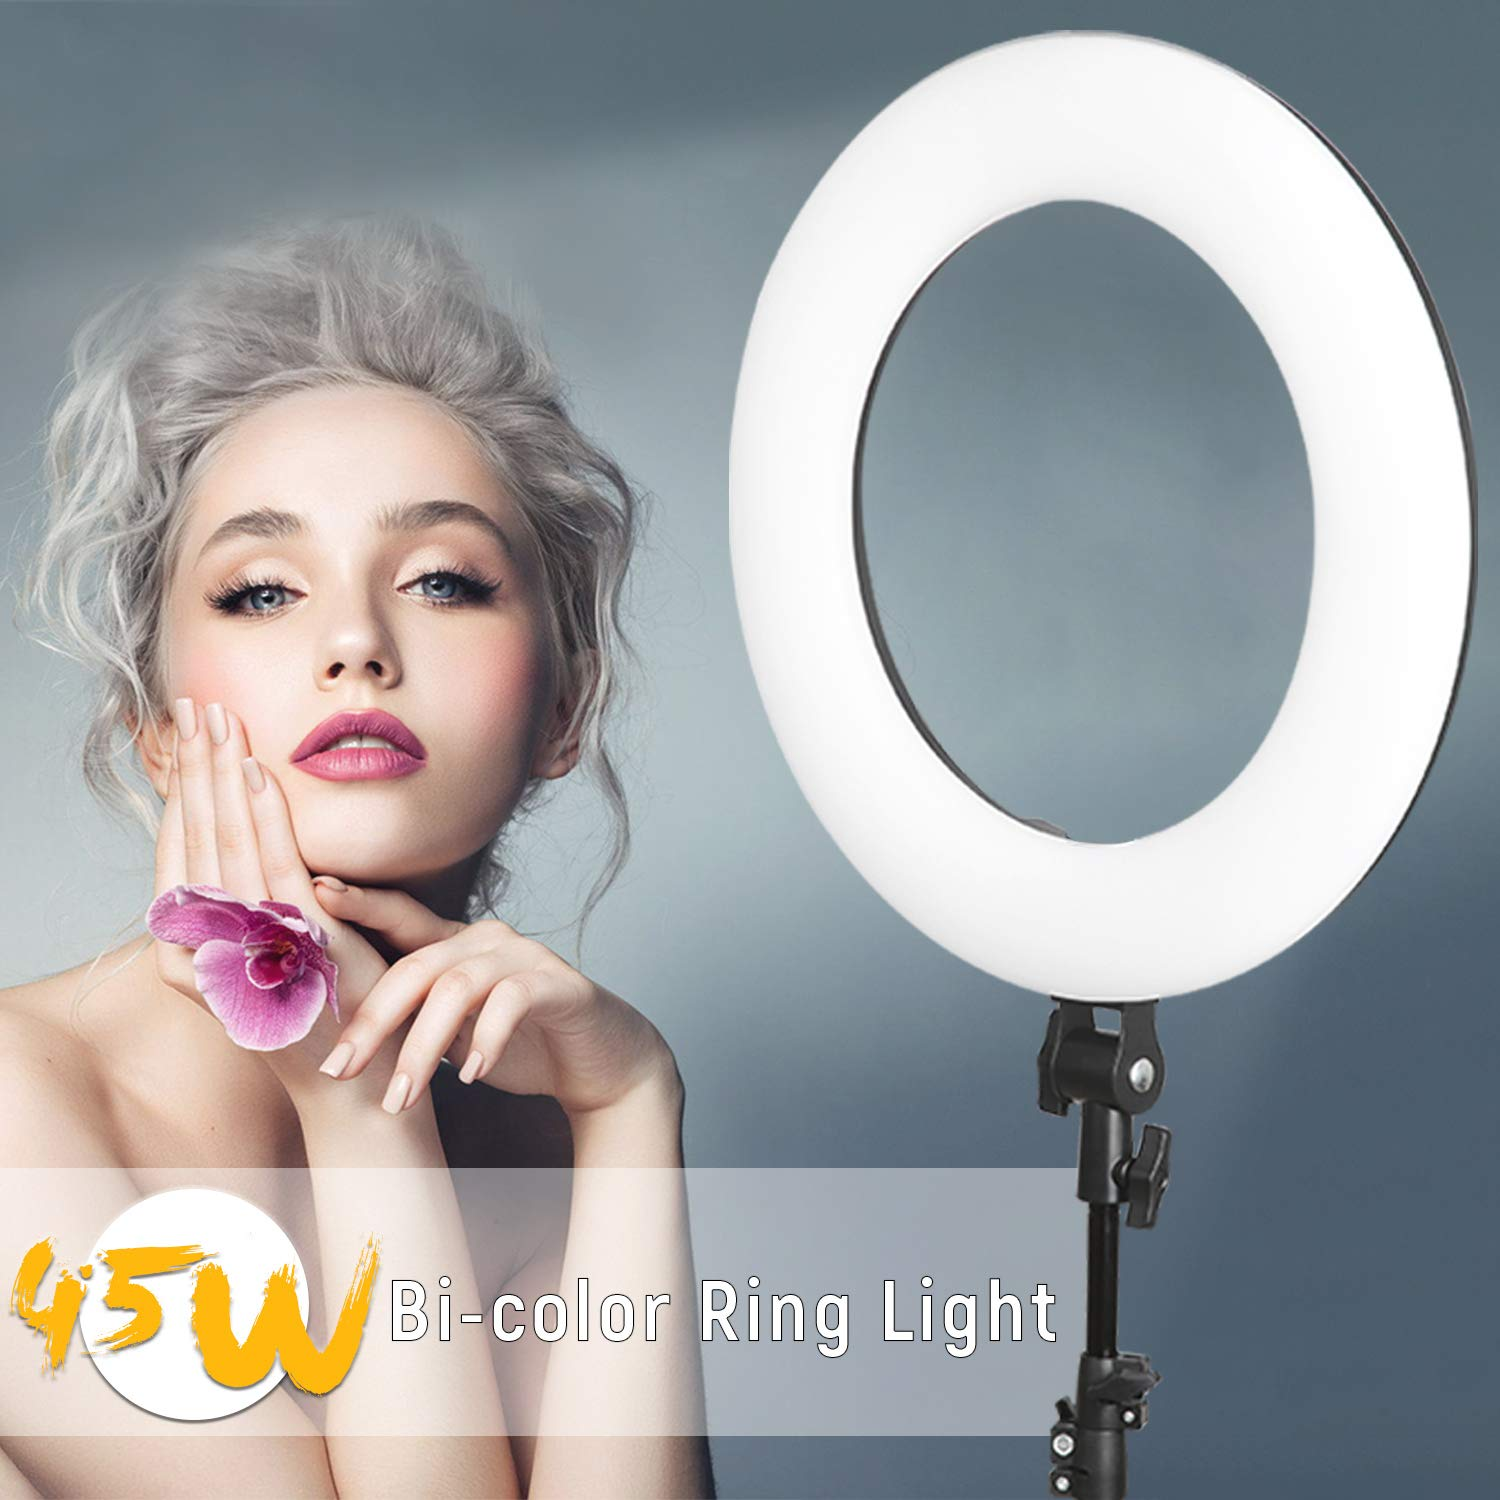 VILTROX 45W Bi-Color Ringlight Ring Light with 75'' inch Stand,18'' 3300K-5600K LED Dimmable Circle Ring Light for Photography Video YouTube Vimeo Portrait Lighting Live Streaming by VILTROX